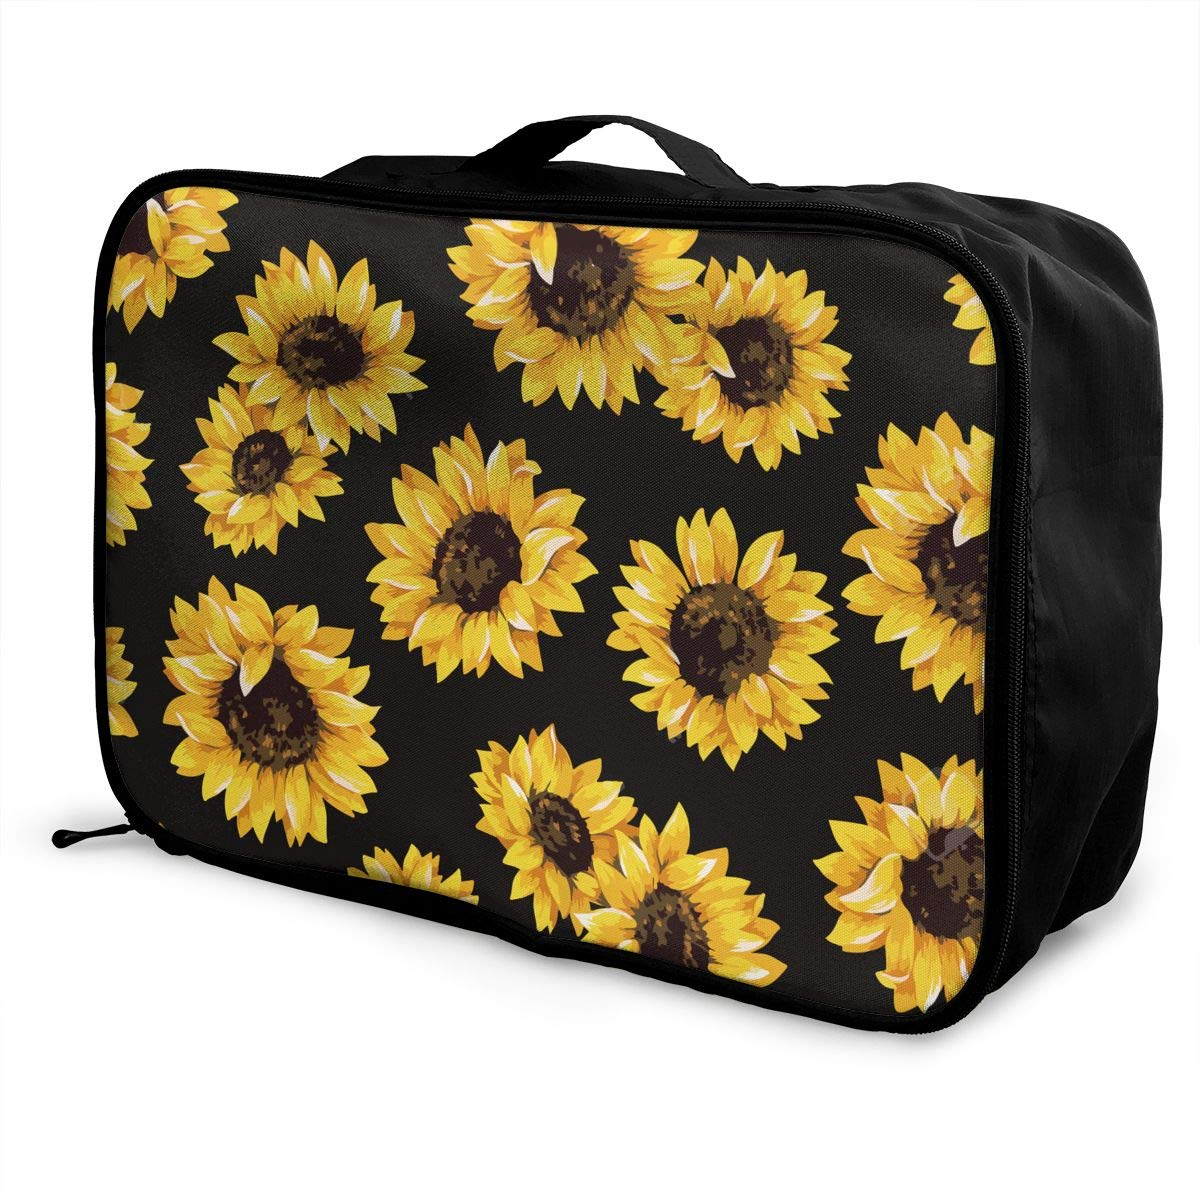 YueLJB Sunflowers Lightweight Large Capacity Portable Luggage Bag Travel Duffel Bag Storage Carry Luggage Duffle Tote Bag